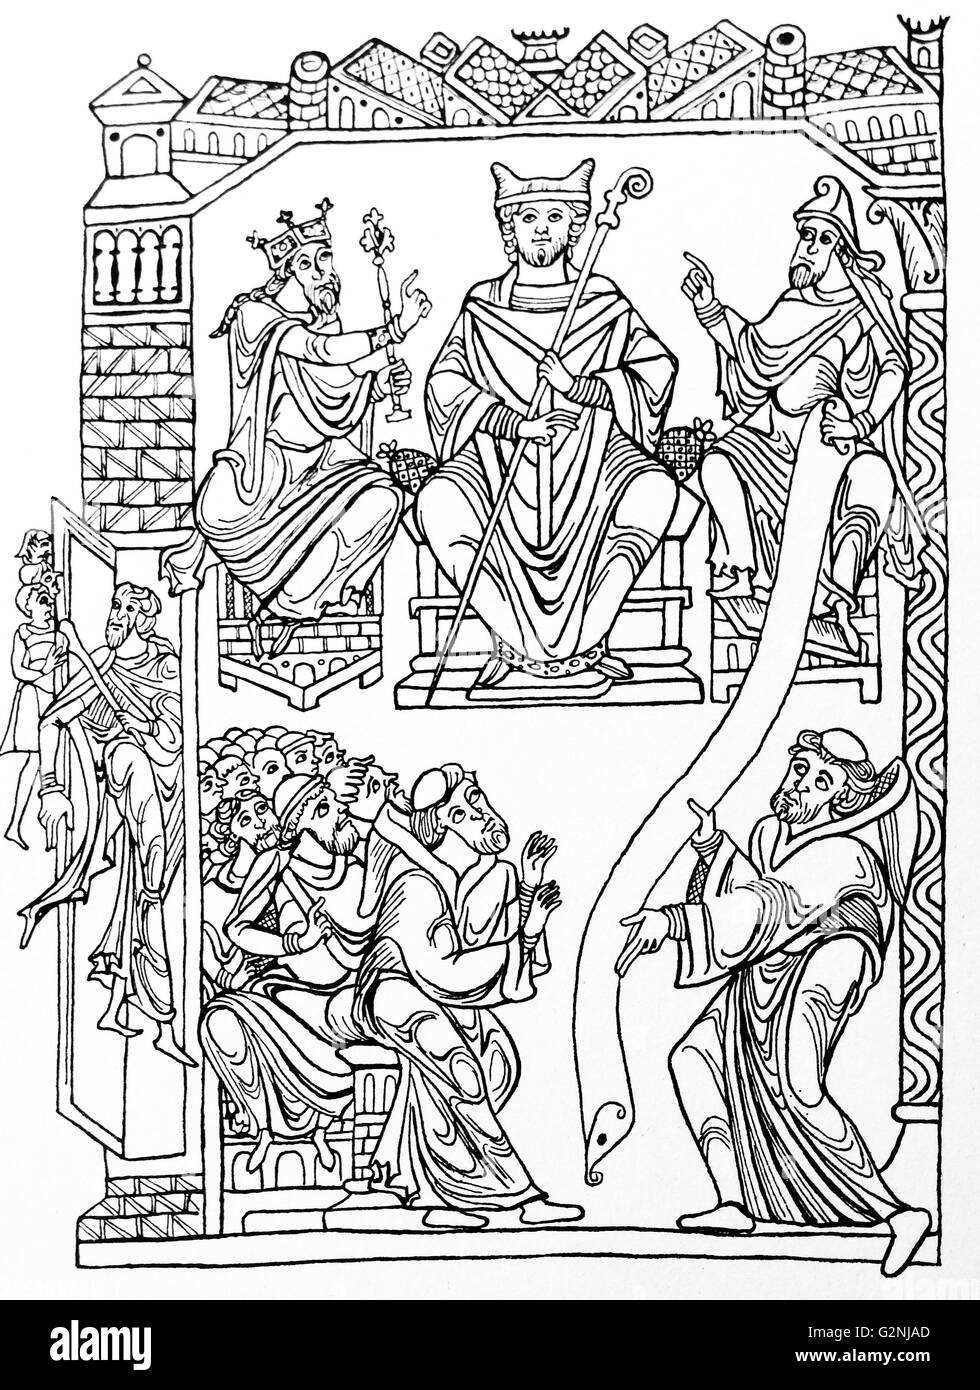 Line drawing of St Benedict - Stock Image